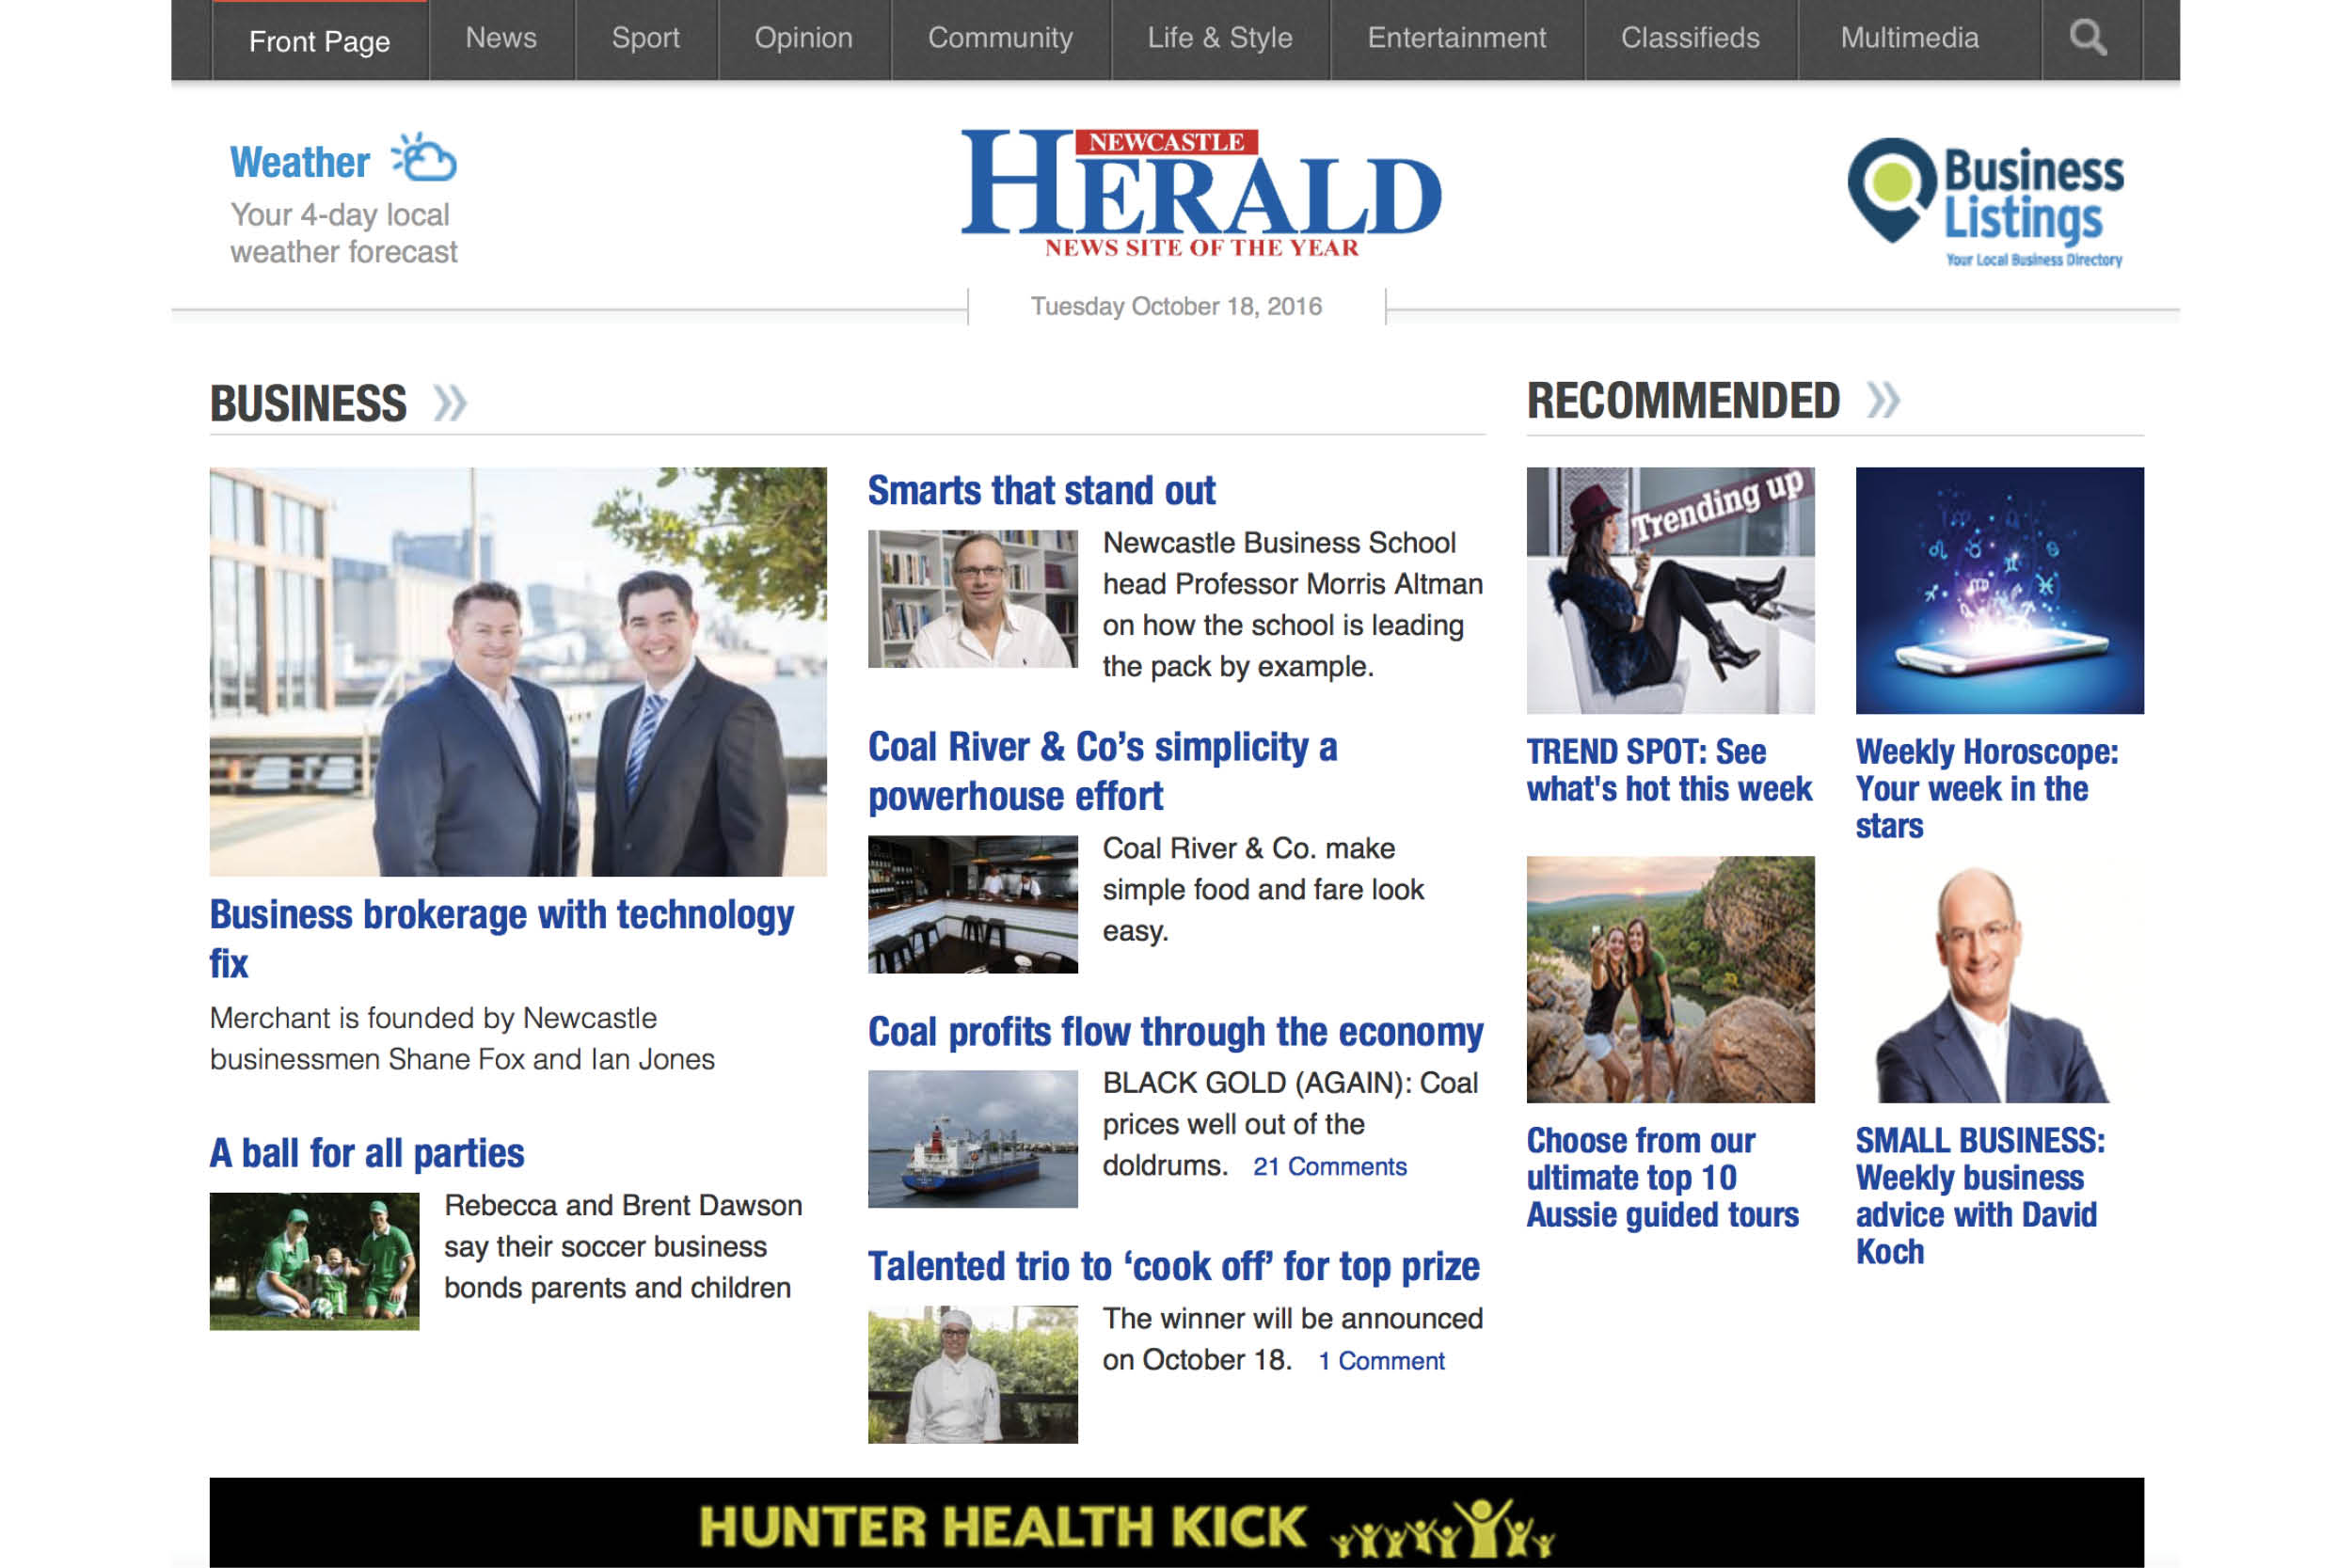 Merchant Business Brokers Newcastle Herald